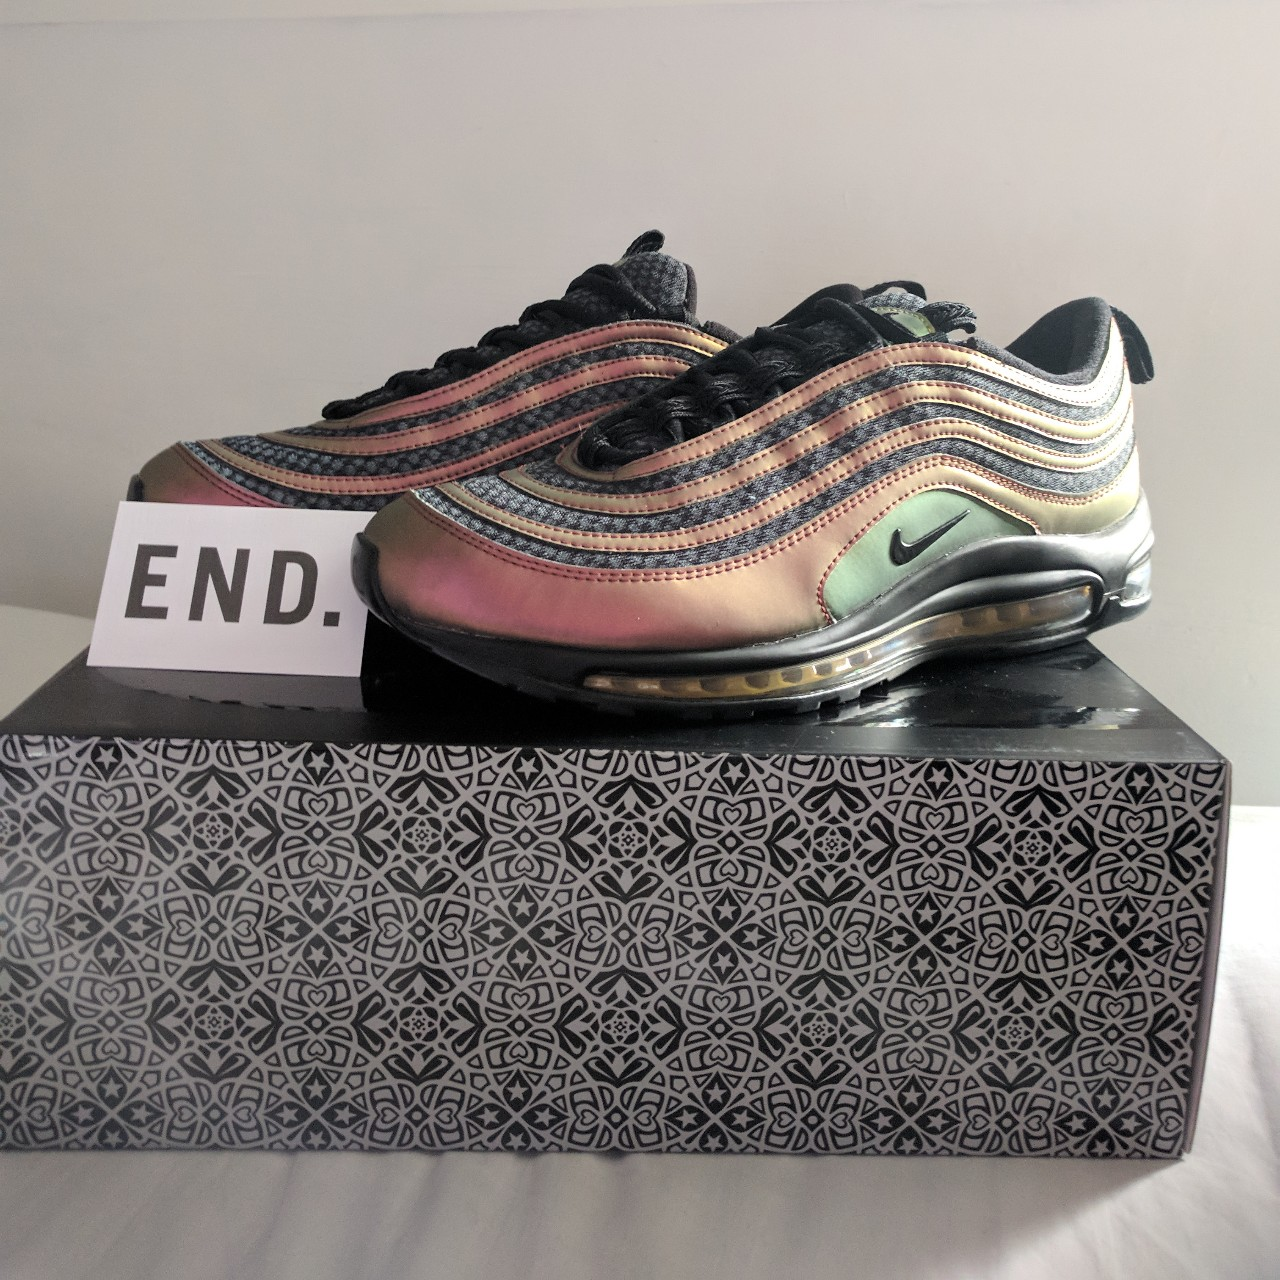 Nike Air Max 97 Sk DS in Size UK10US11 WBox Price Depop